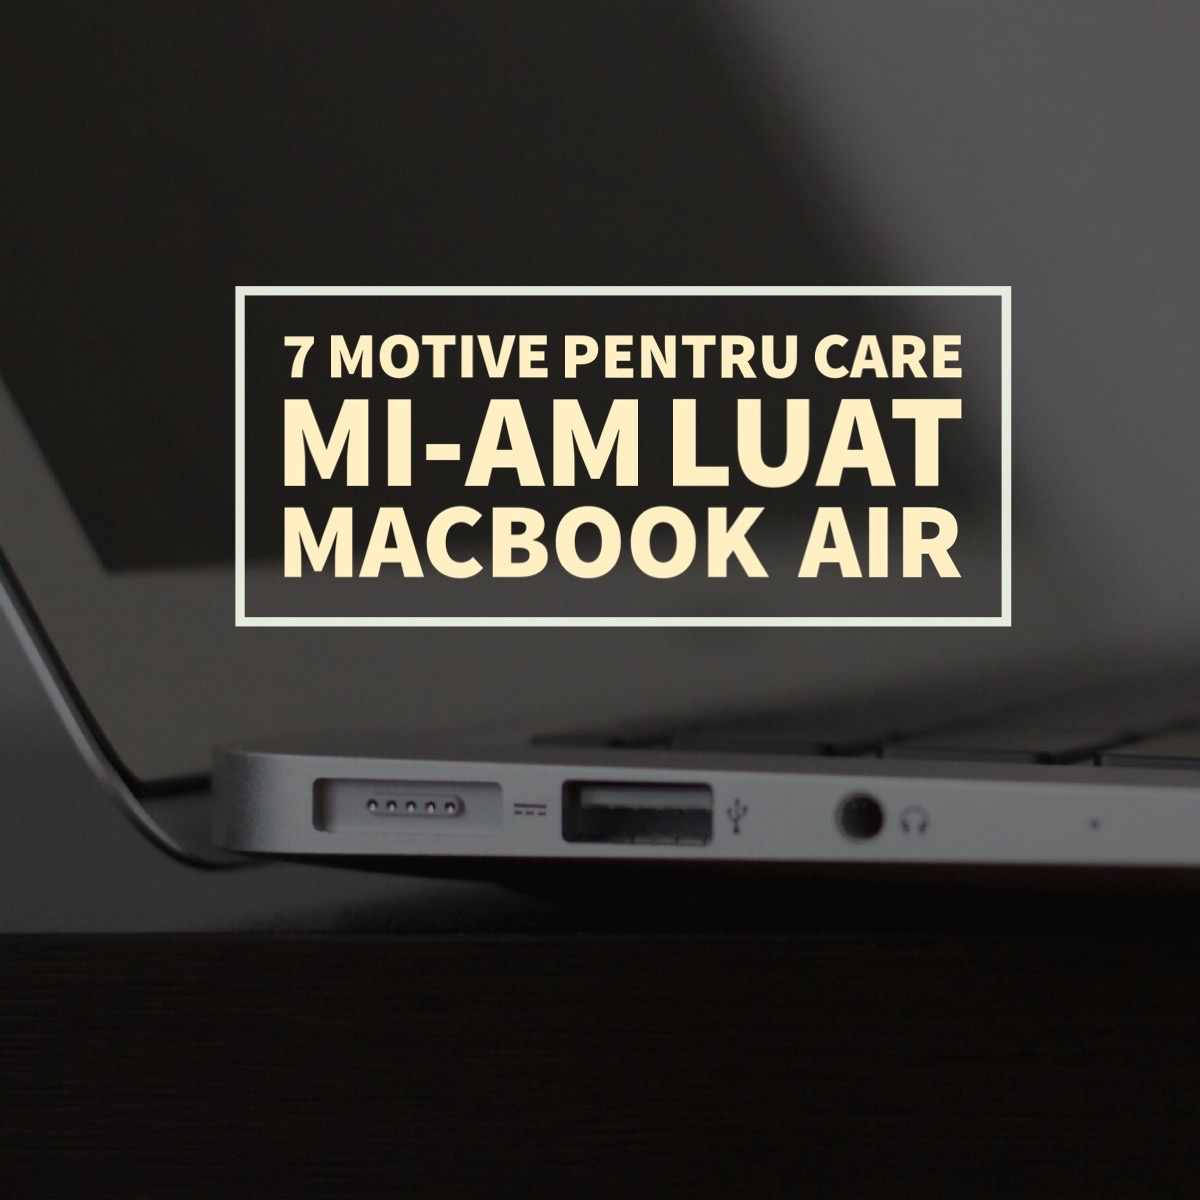 macbook air 7 motive